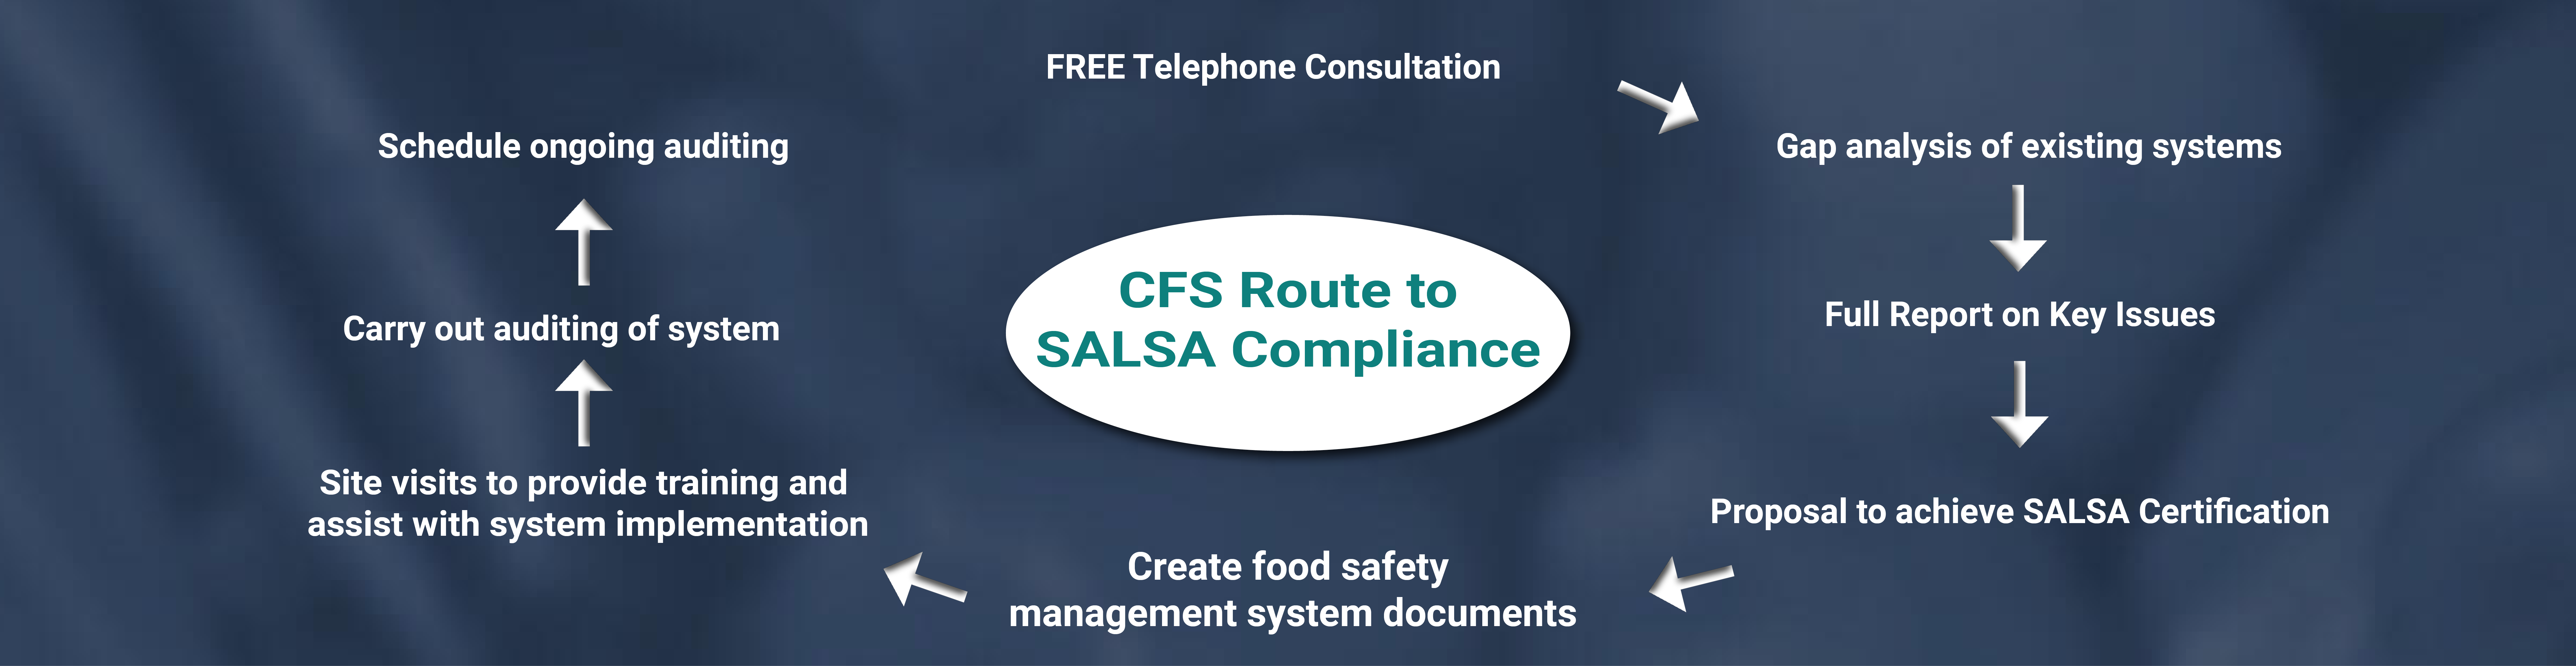 CFS Route to SALSA Compliance